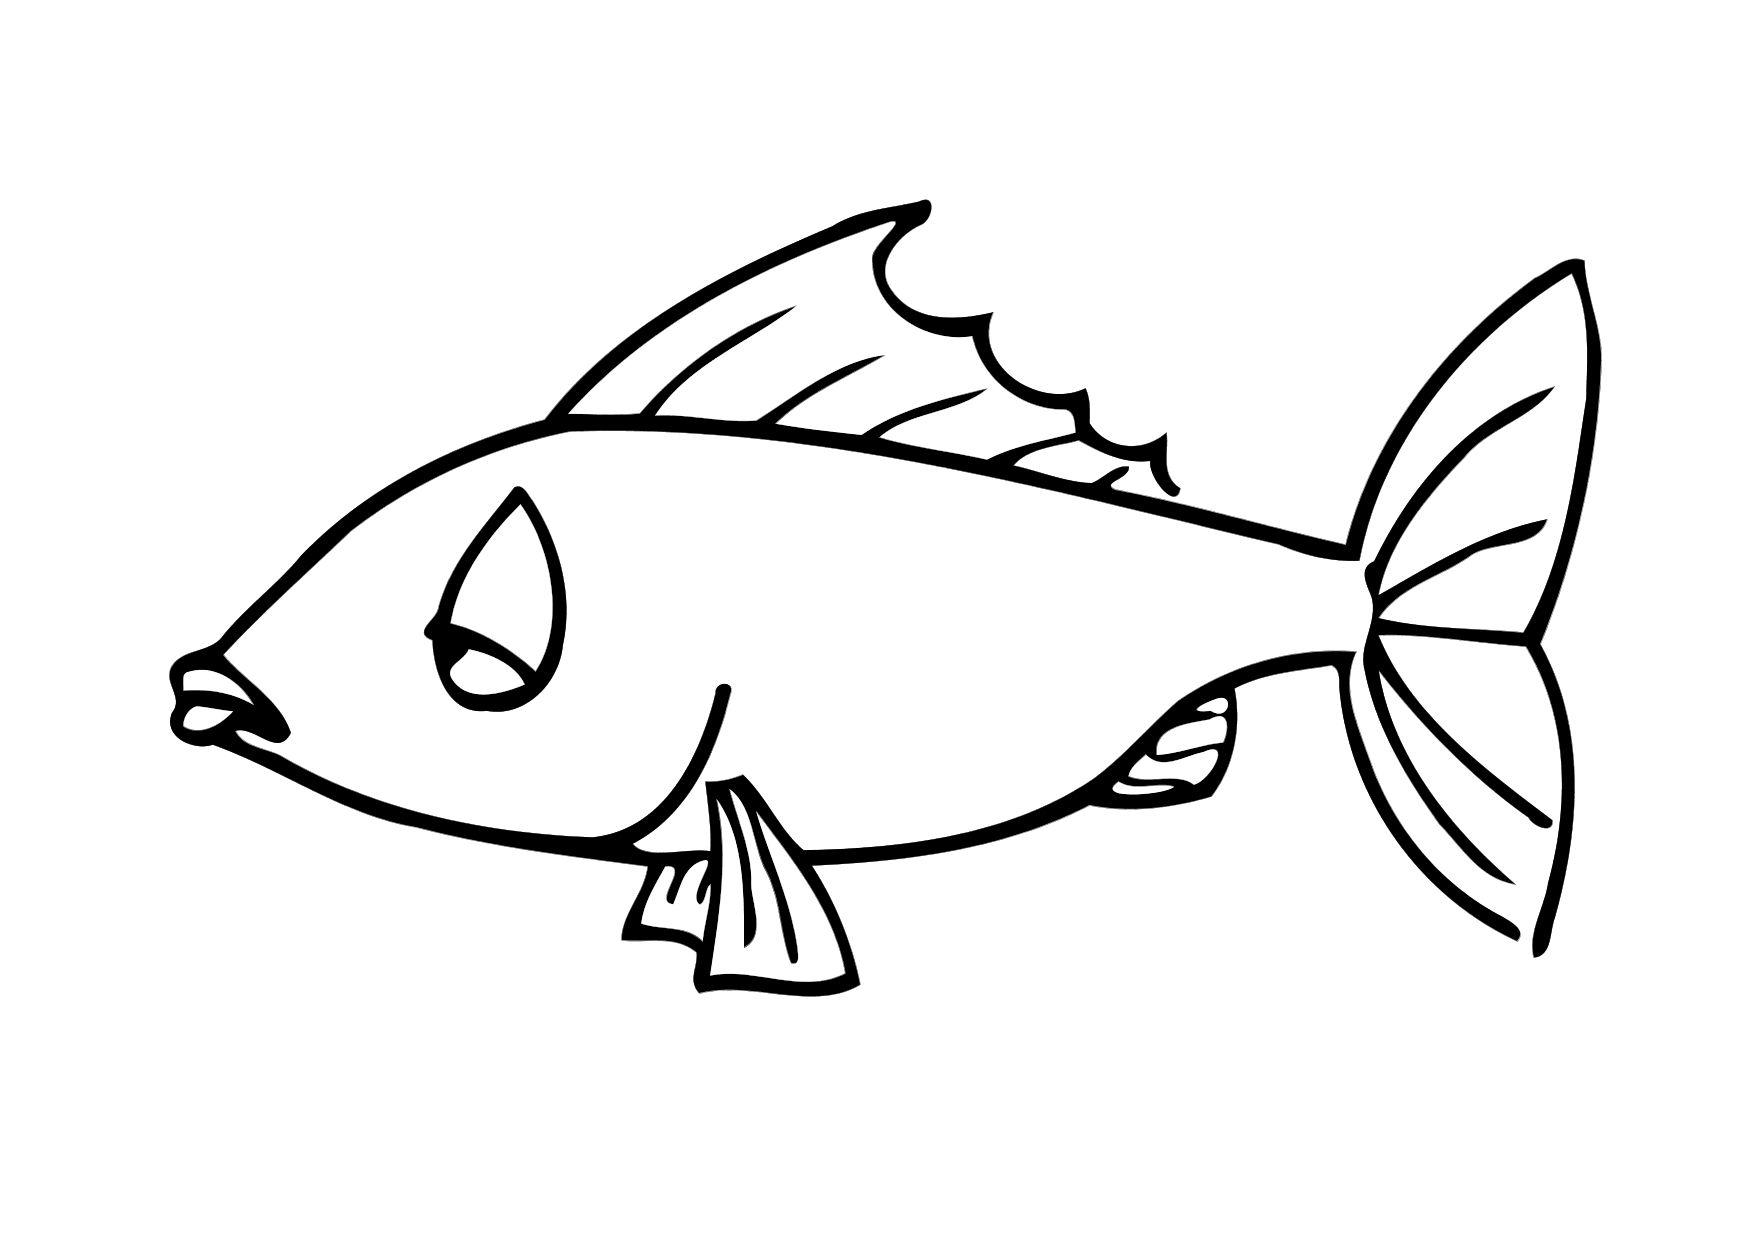 Coloring page fish - img 12298.